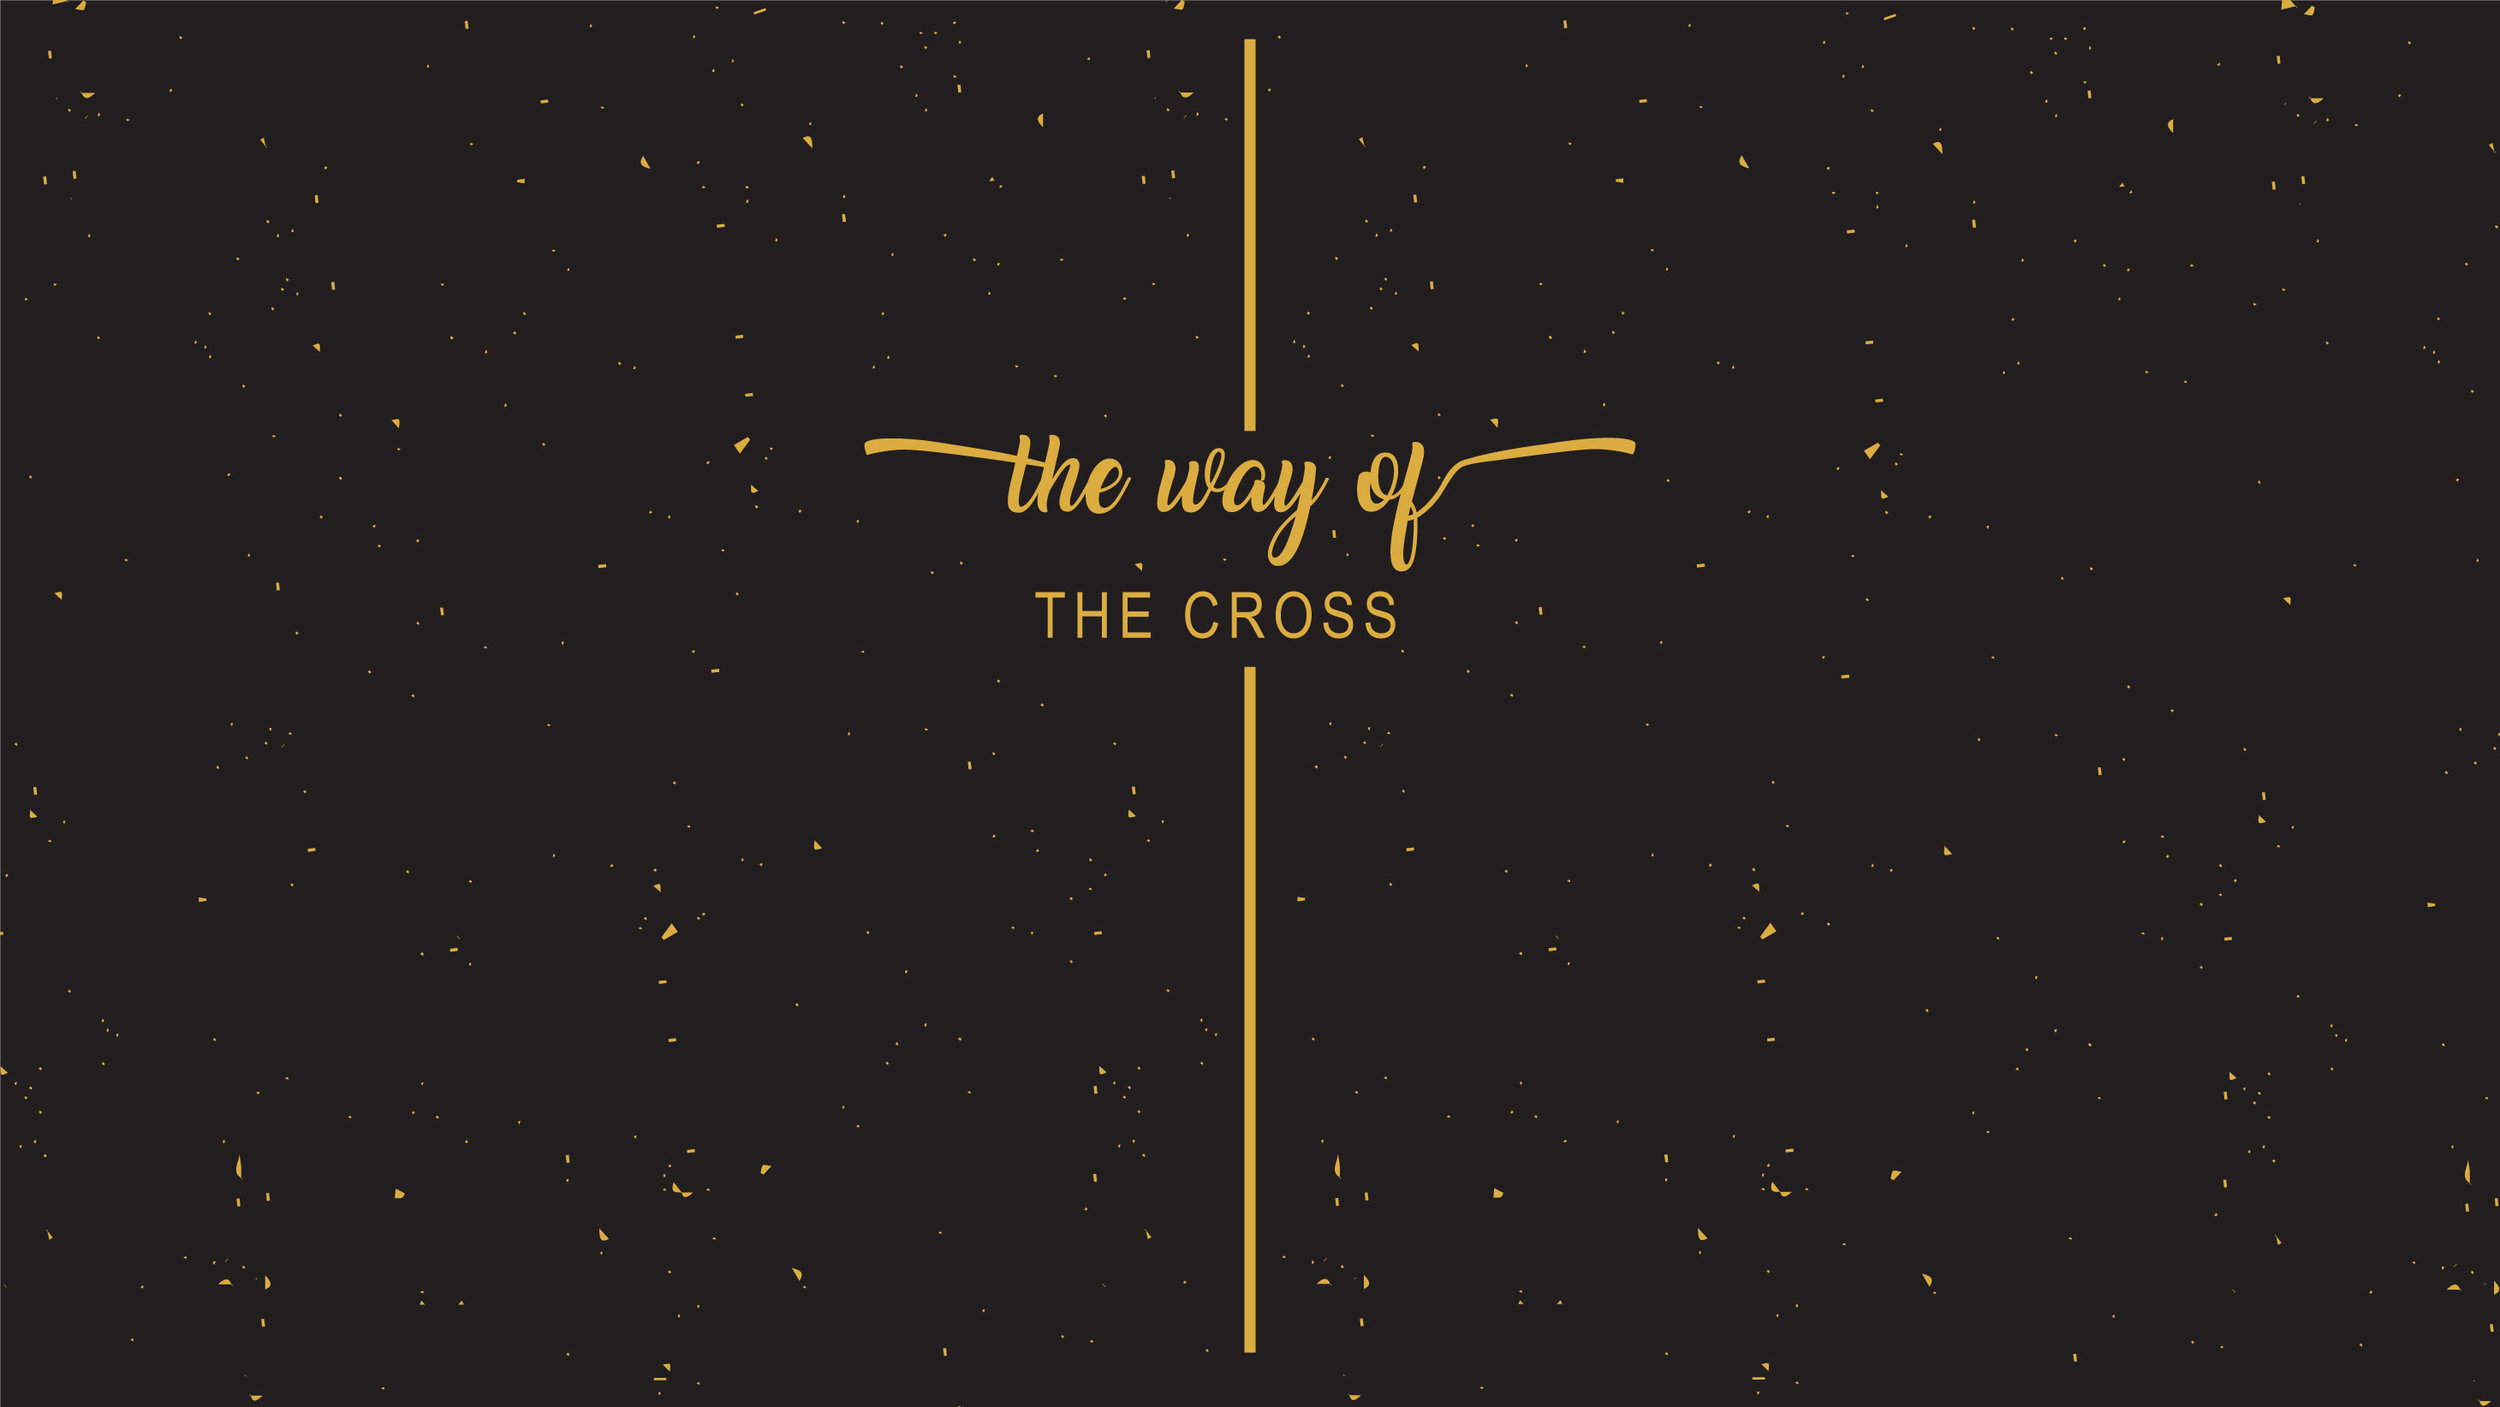 The-Way-Of-The-Cross.jpg